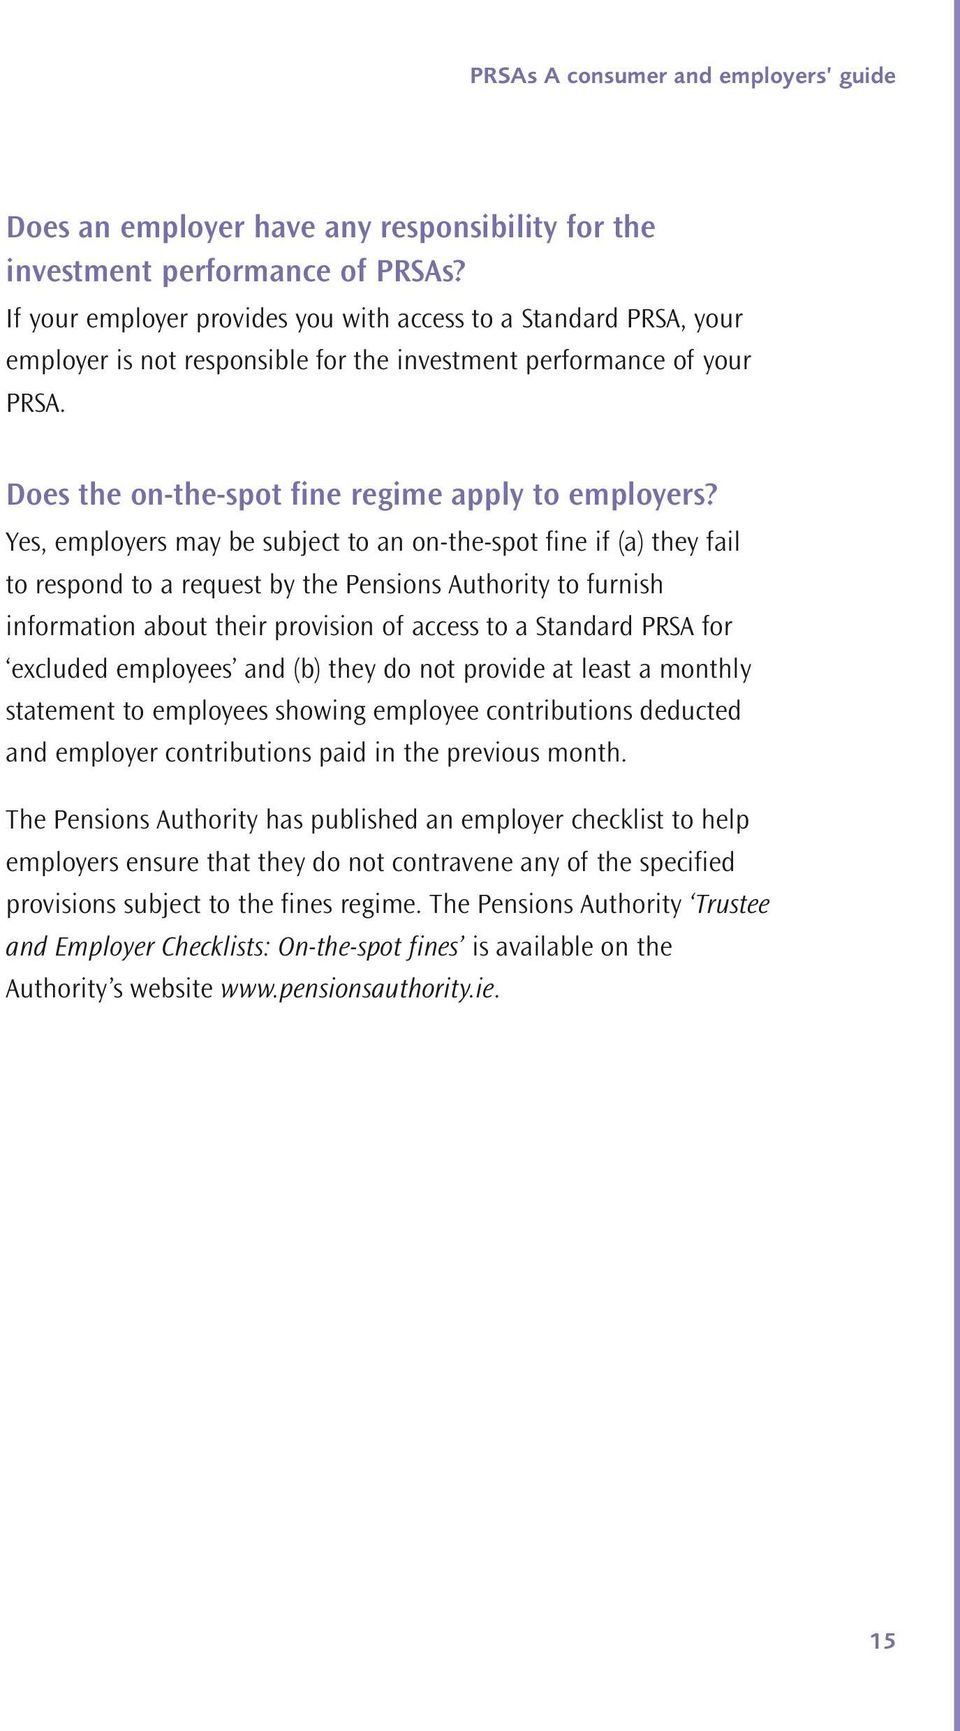 Yes, employers may be subject to a o-the-spot fie if (a) they fail to respod to a request by the Pesios Authority to furish iformatio about their provisio of access to a Stadard PRSA for excluded